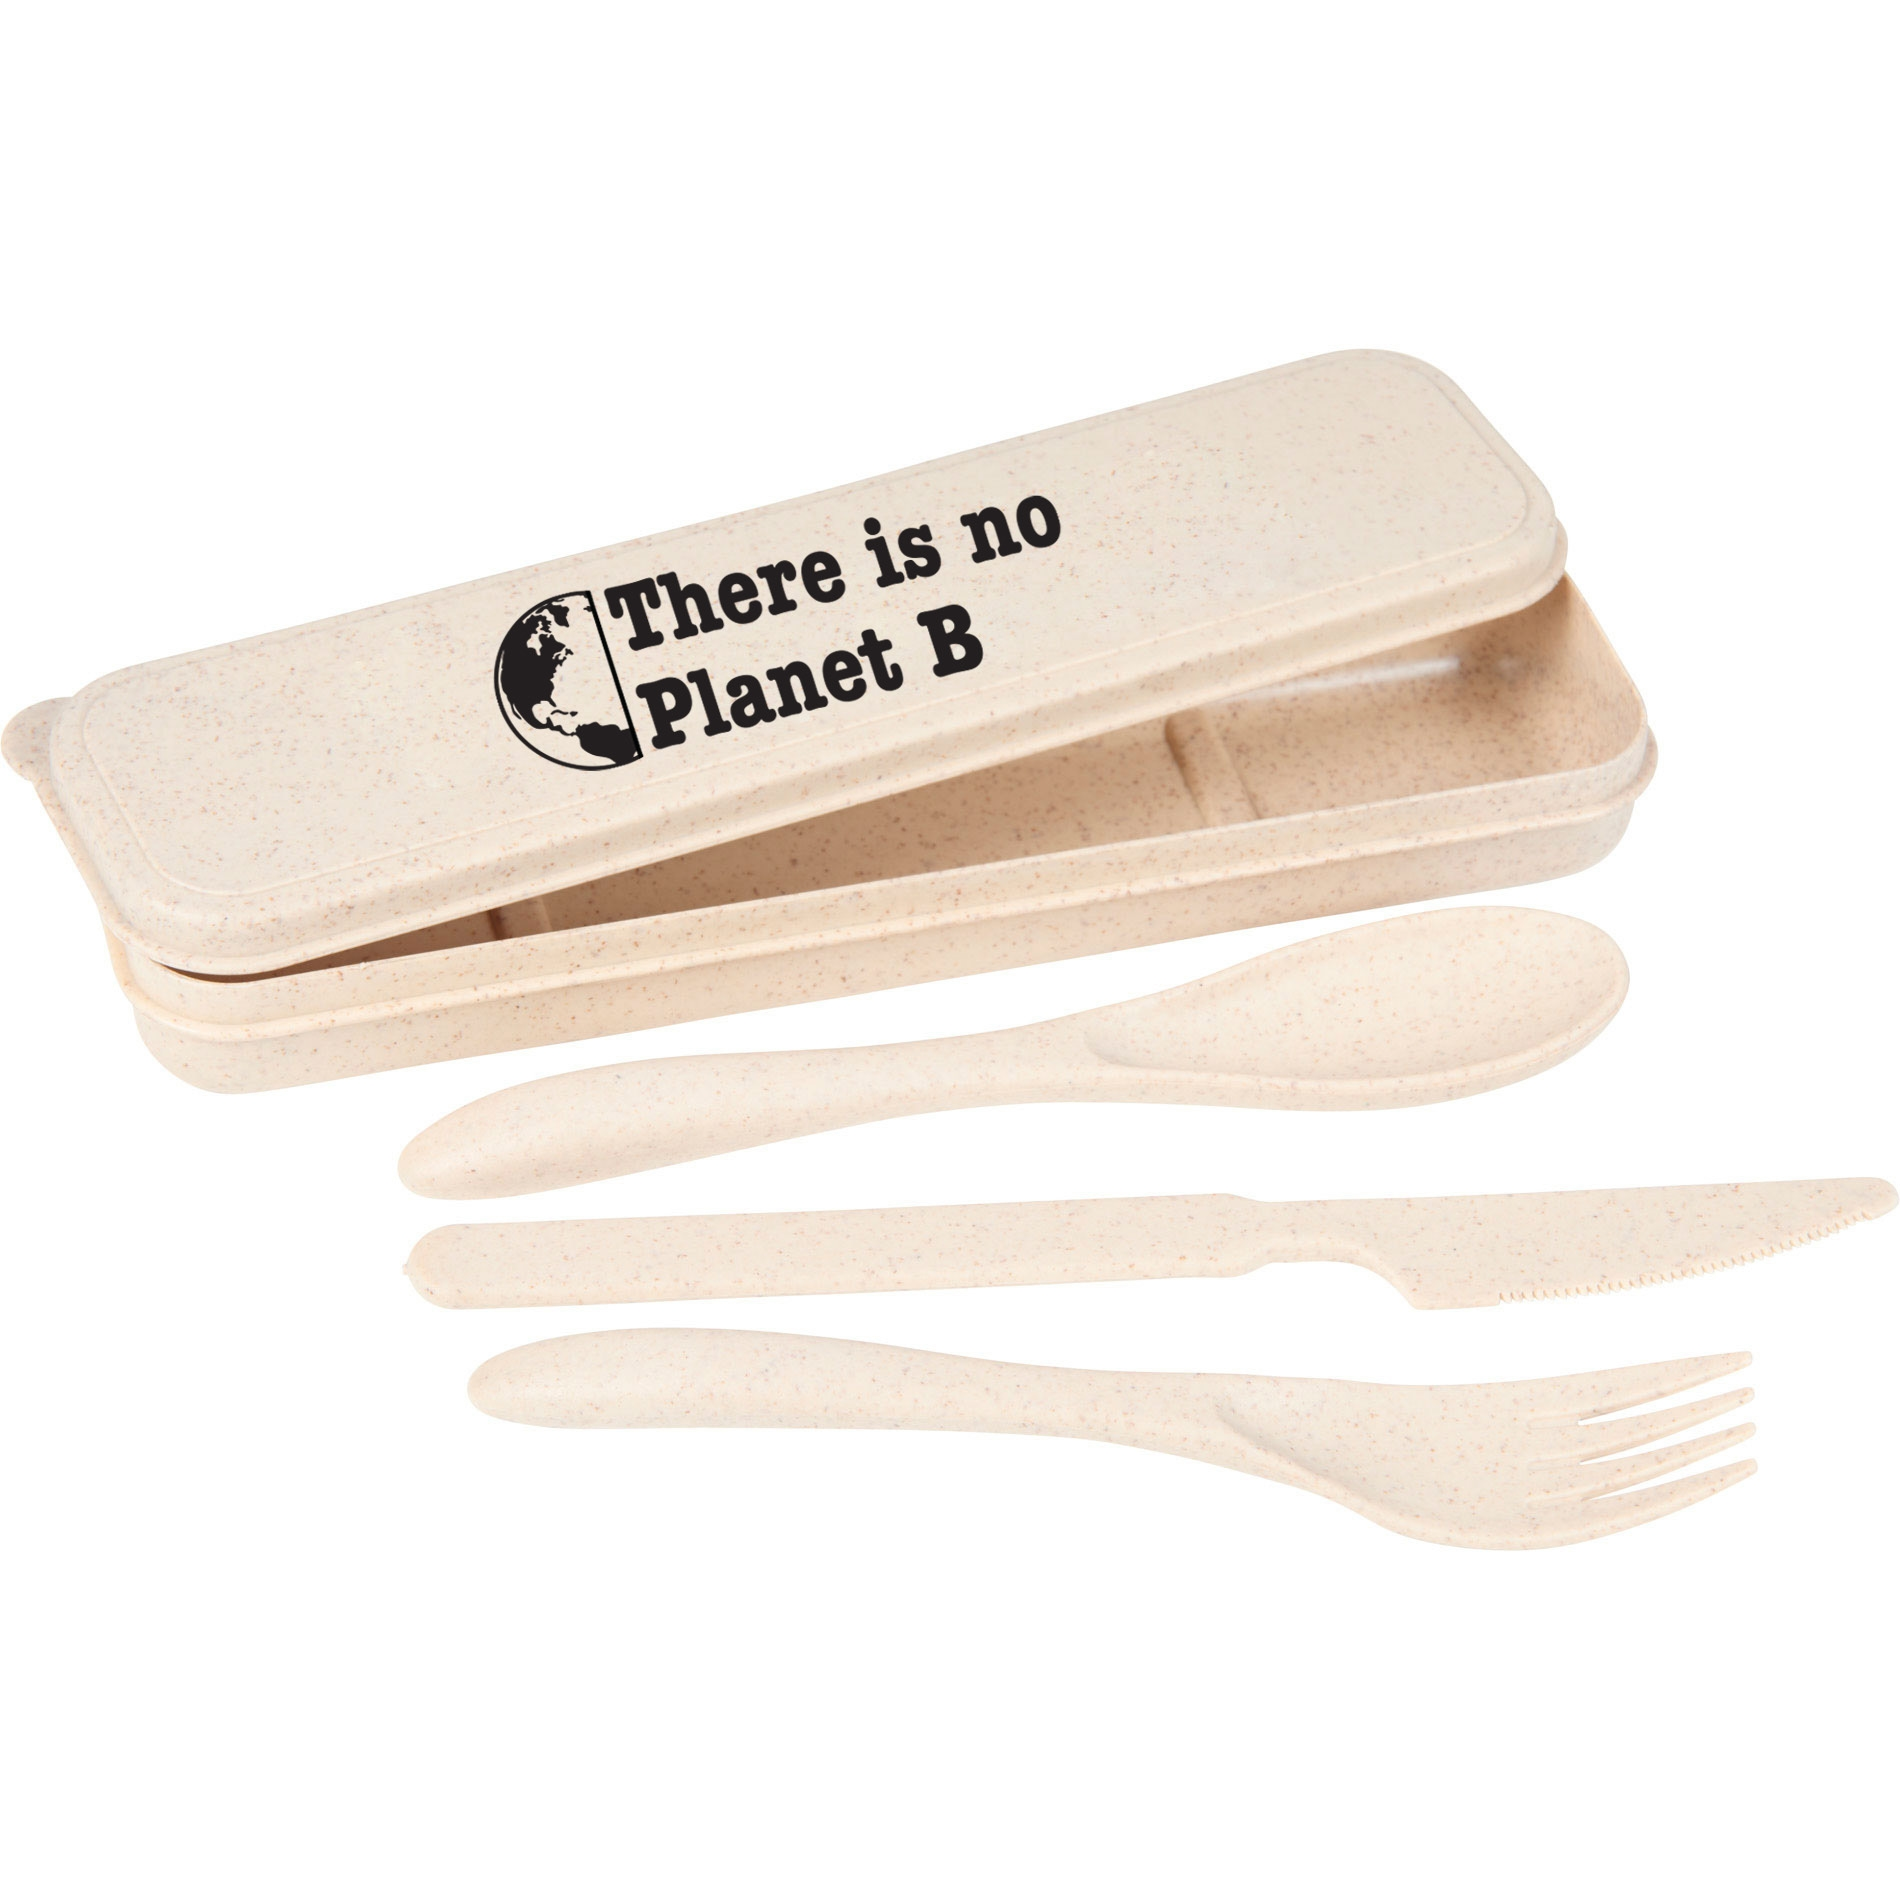 travel utensil set made of bamboo